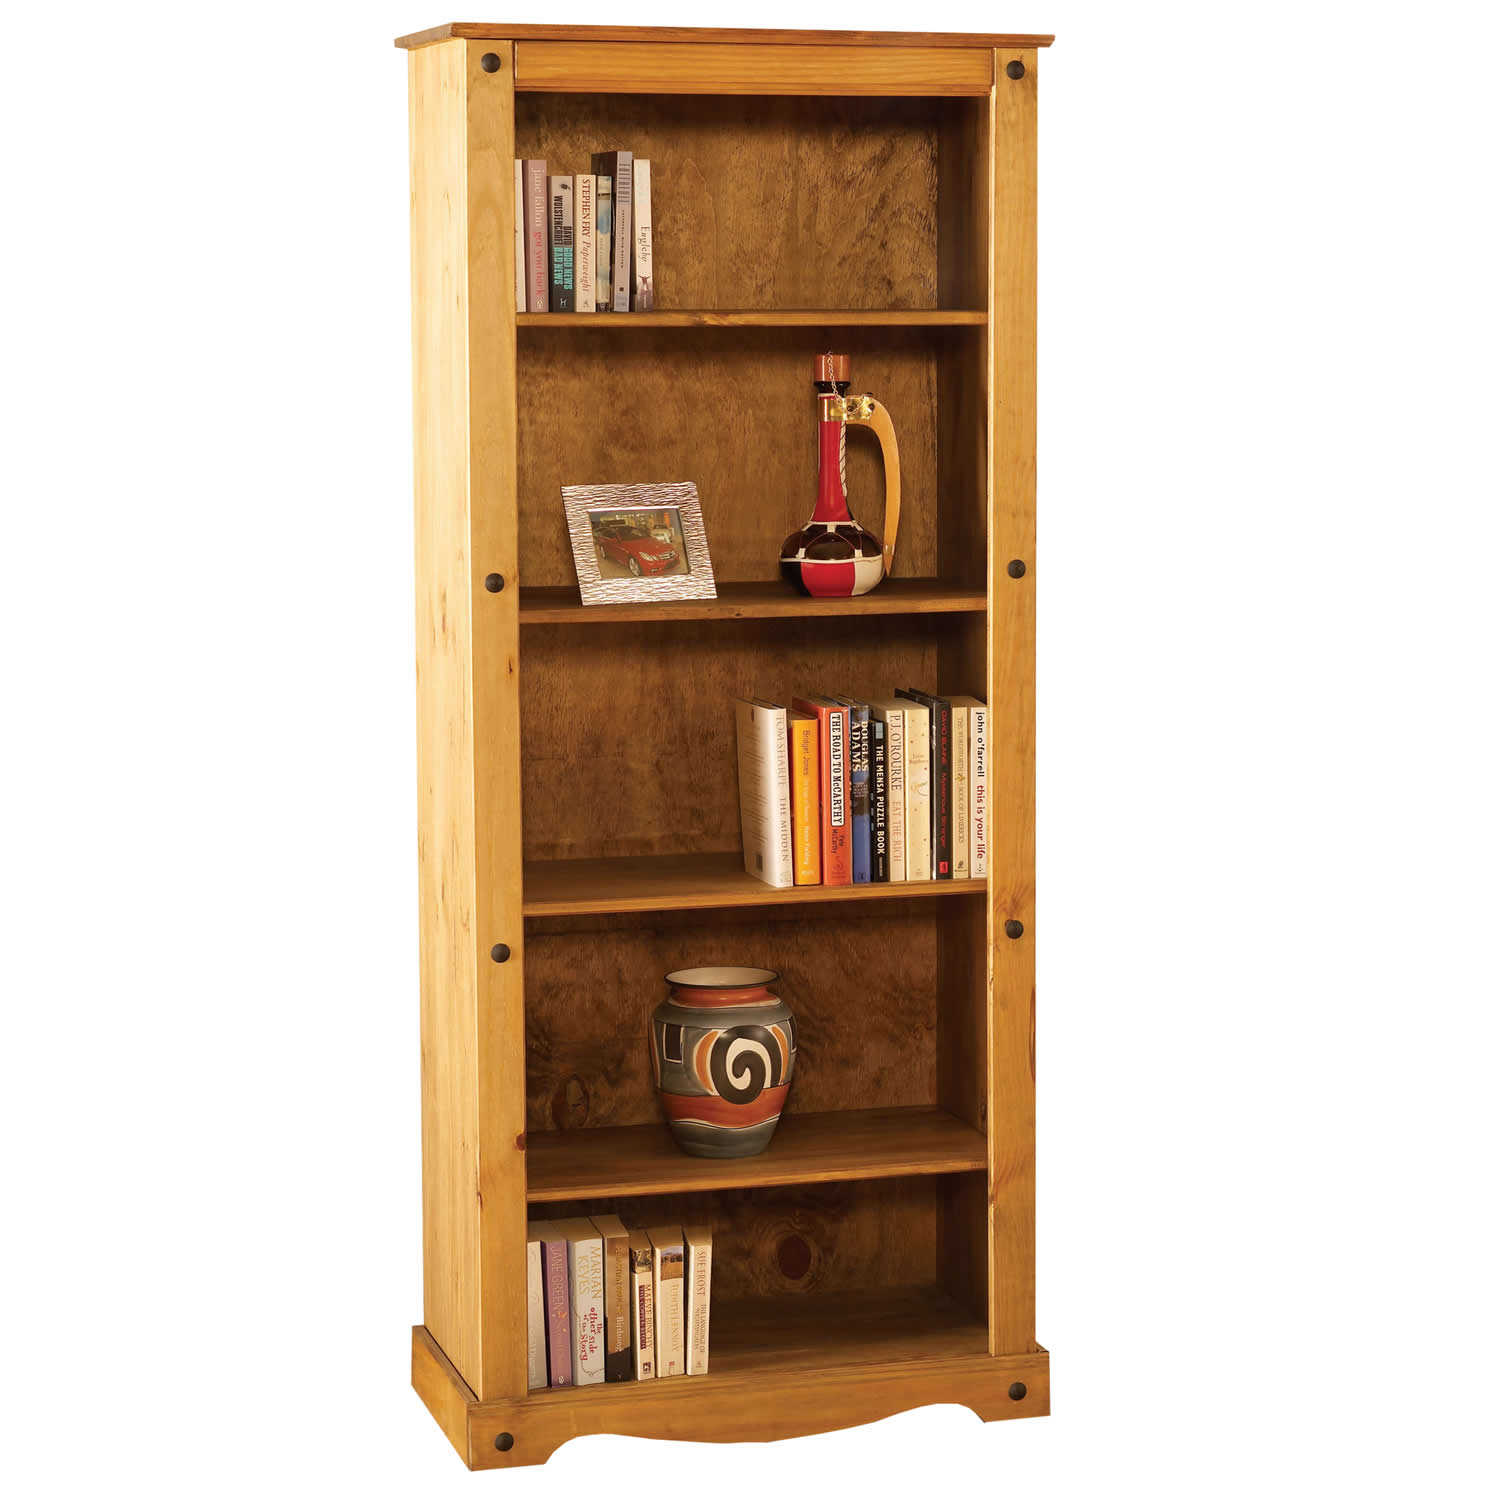 Image of: Distressed Bookcase Ideas